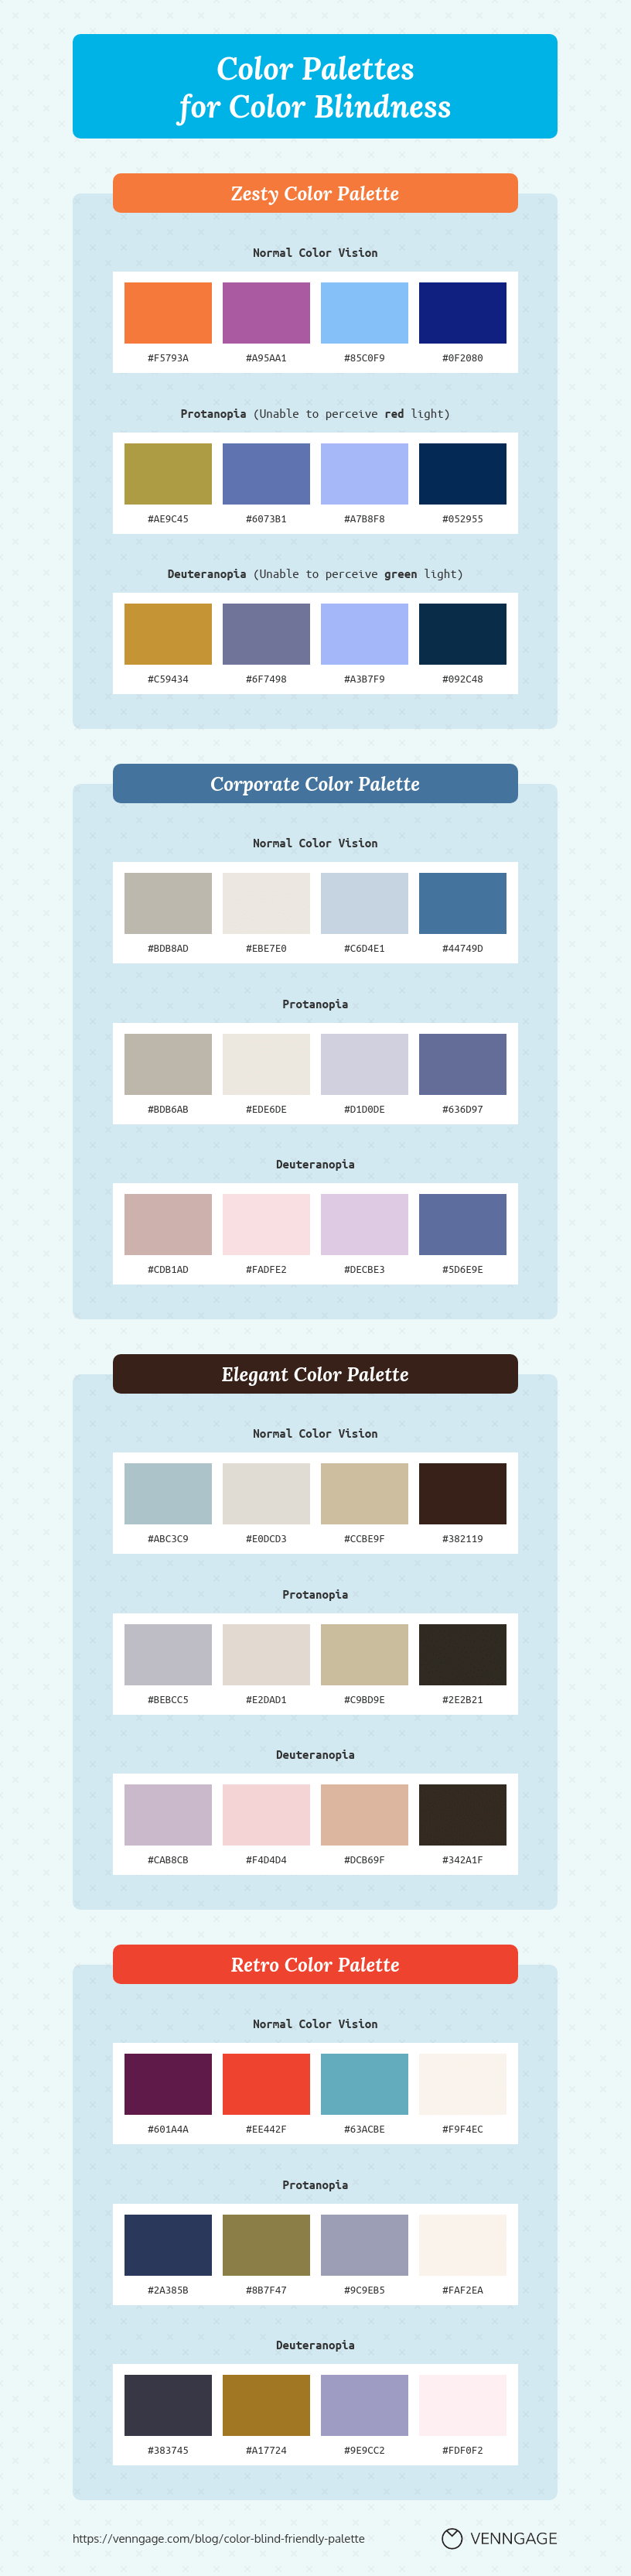 color-blind-friendly-palette-infographic